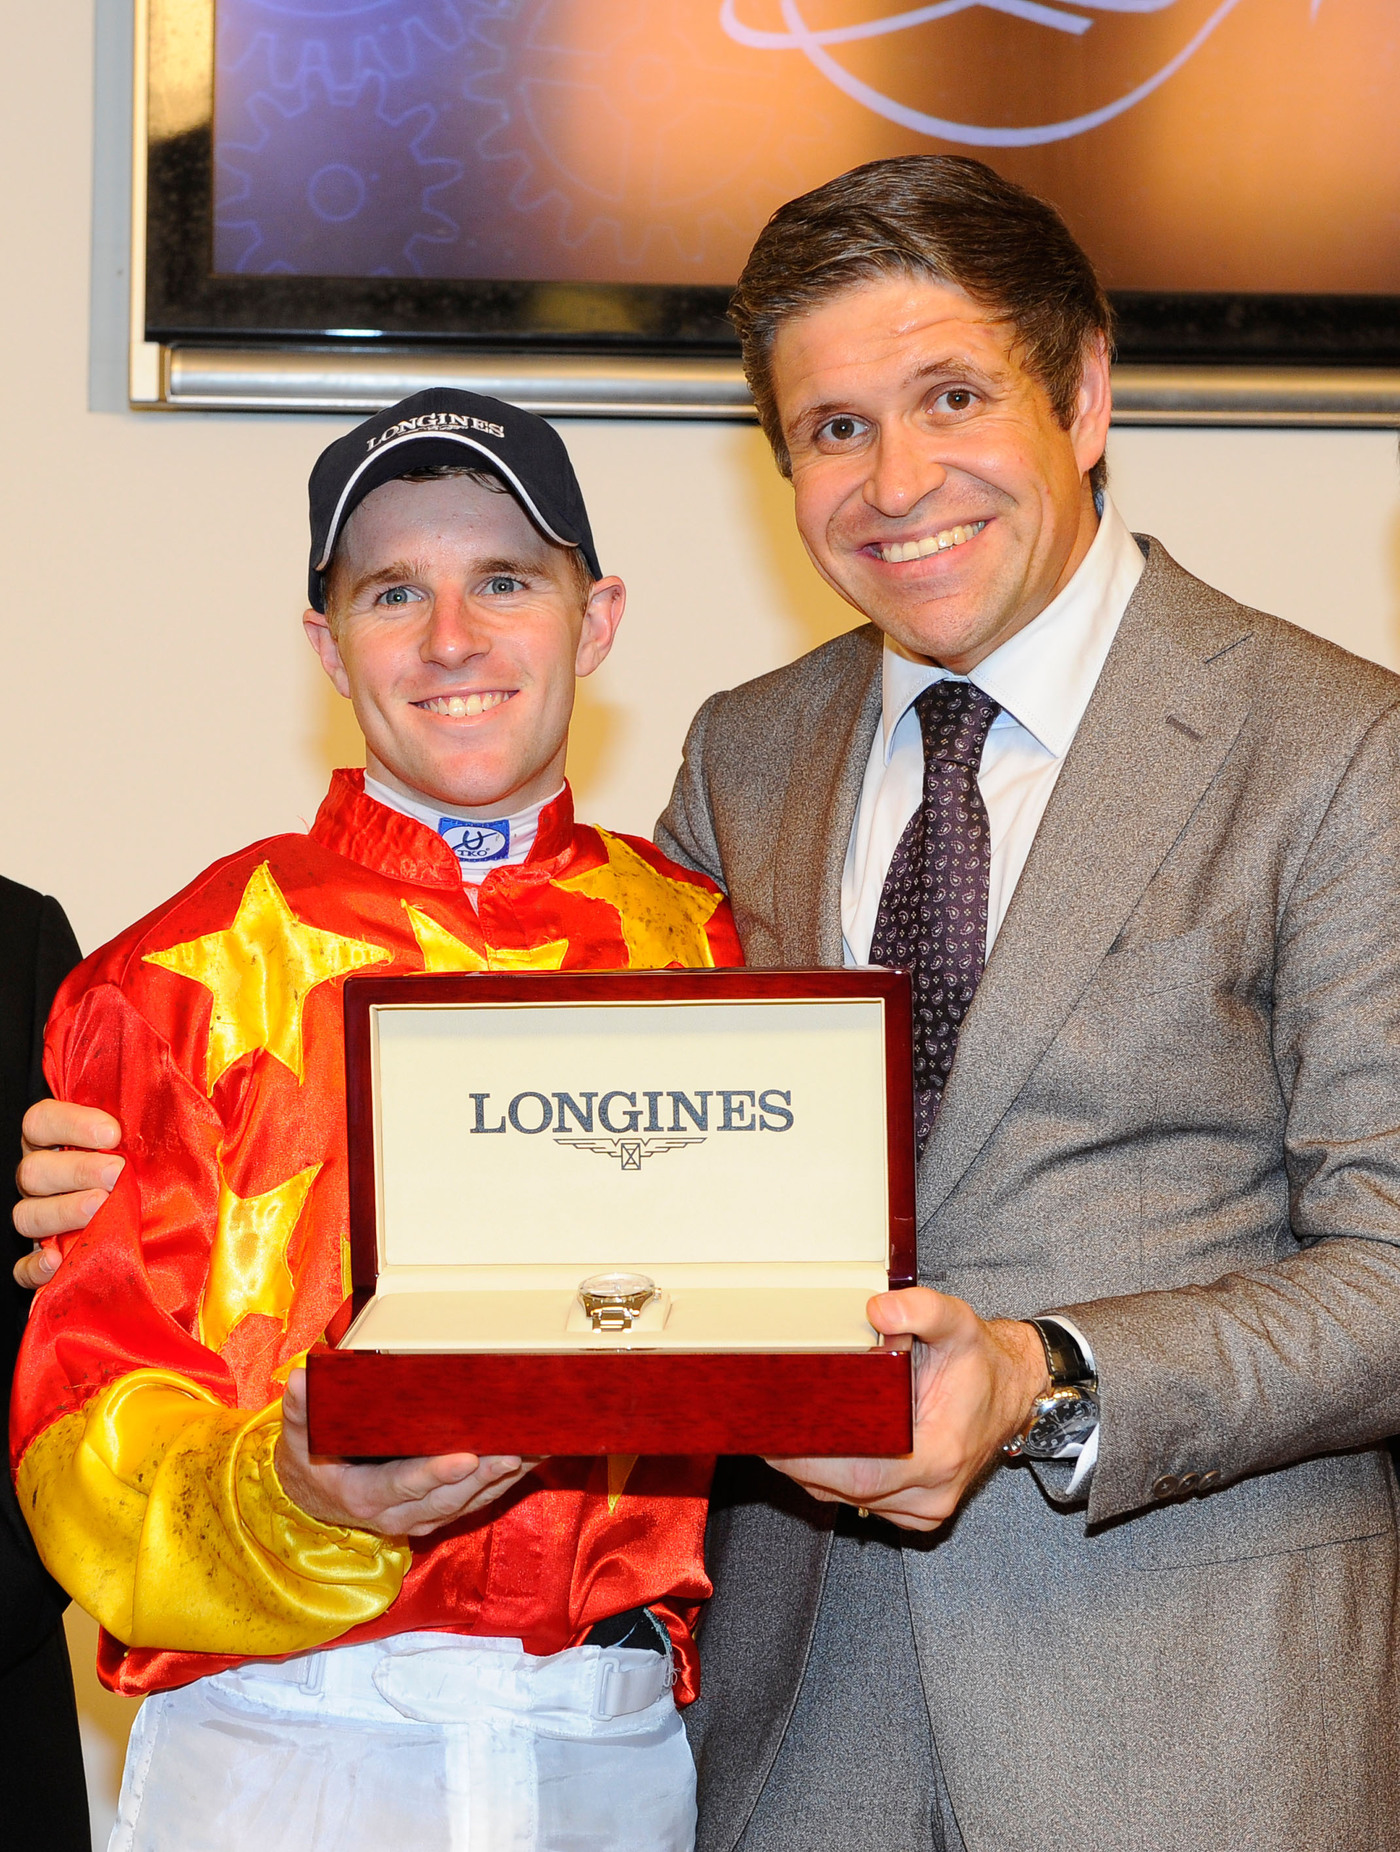 Longines Flat Racing Event: The prestigious Longines Singapore Gold Cup 2013 raises S$374,483 for charity 2